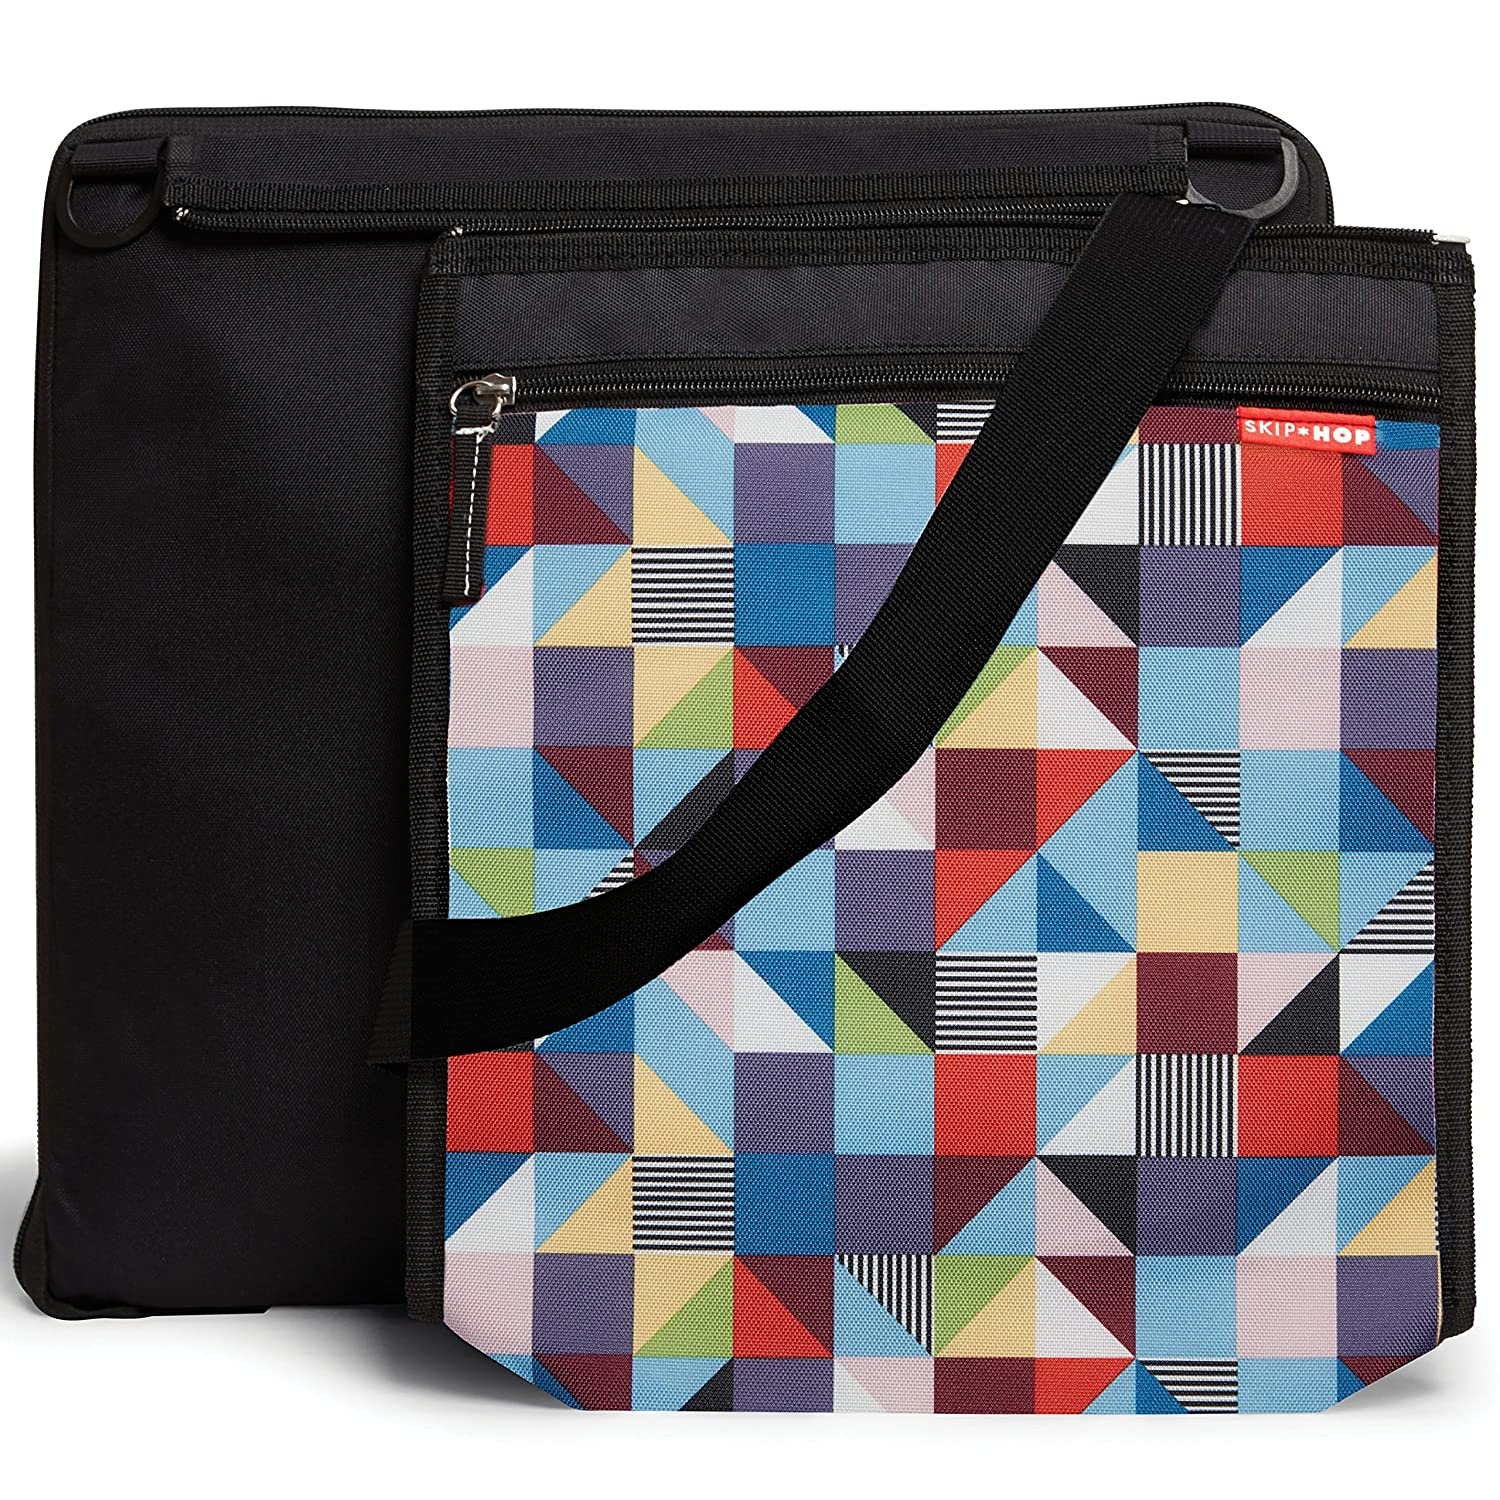 Skip Hop On-The-Go Central Park Outdoor Blanket and Cooler Bag, Prism 275008